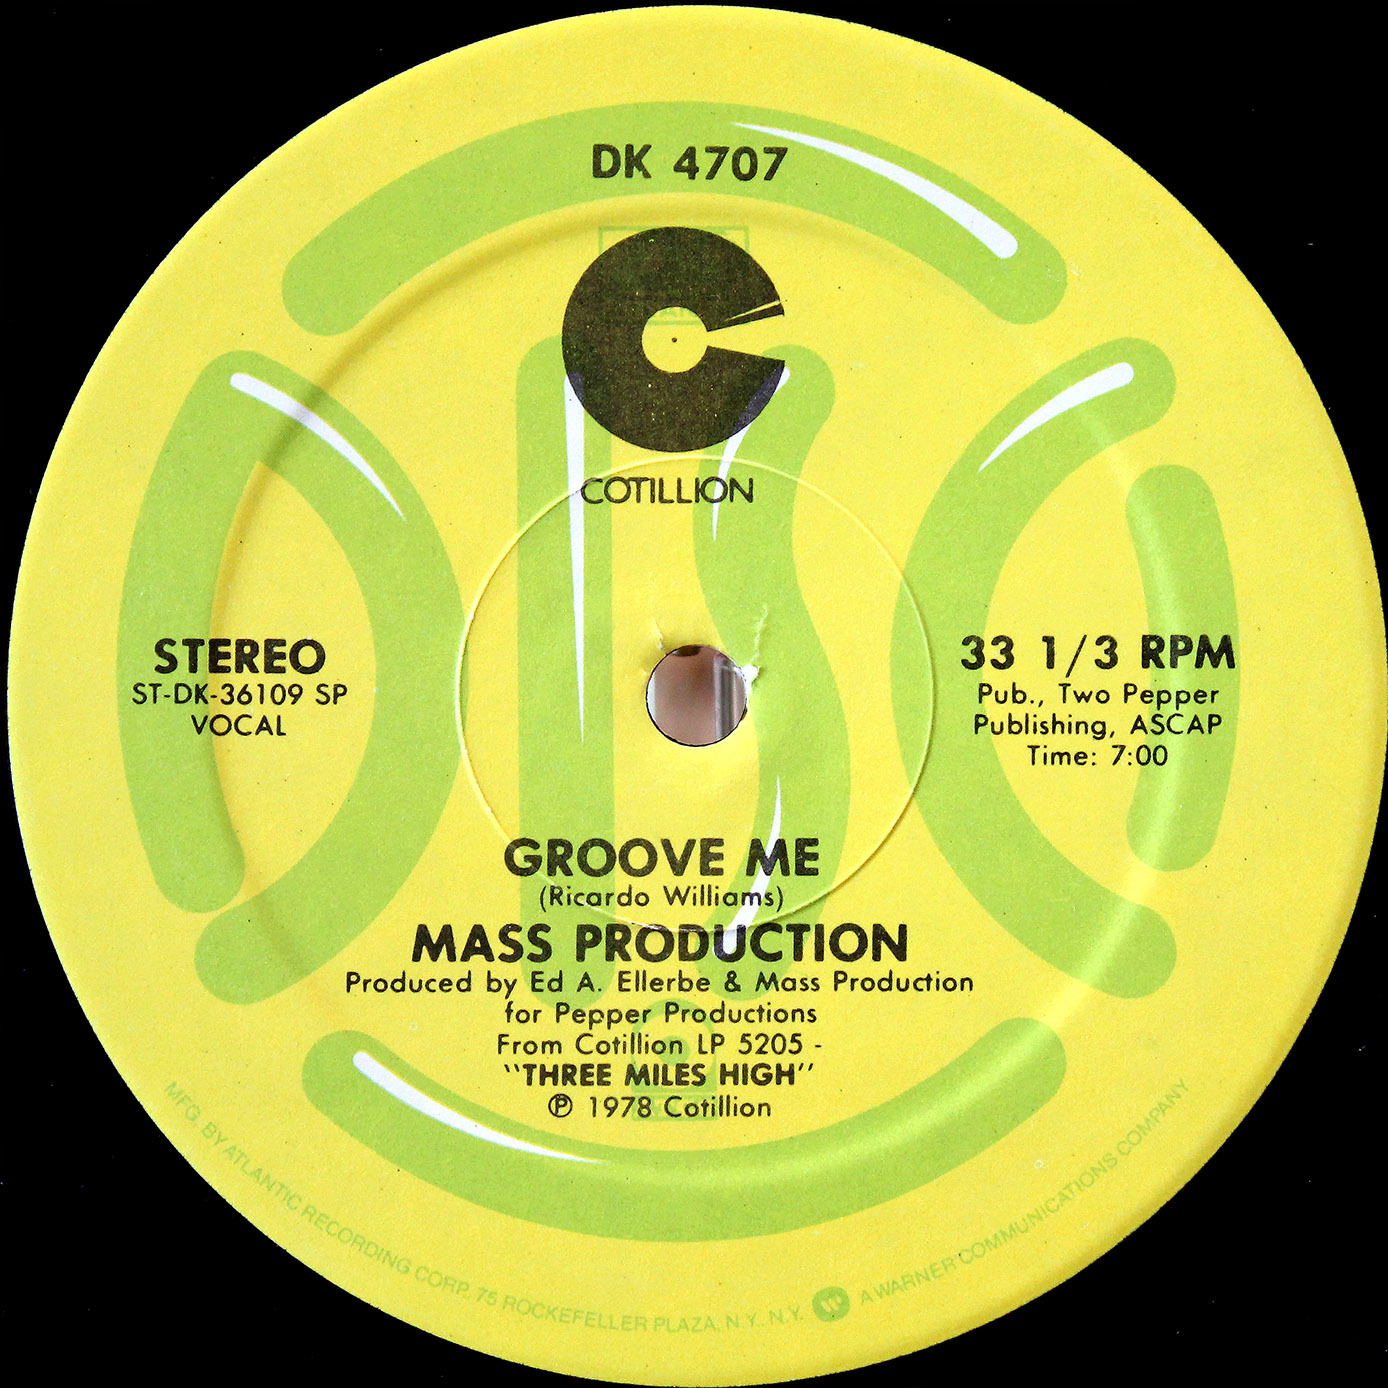 Mass Production - Groove Me 02